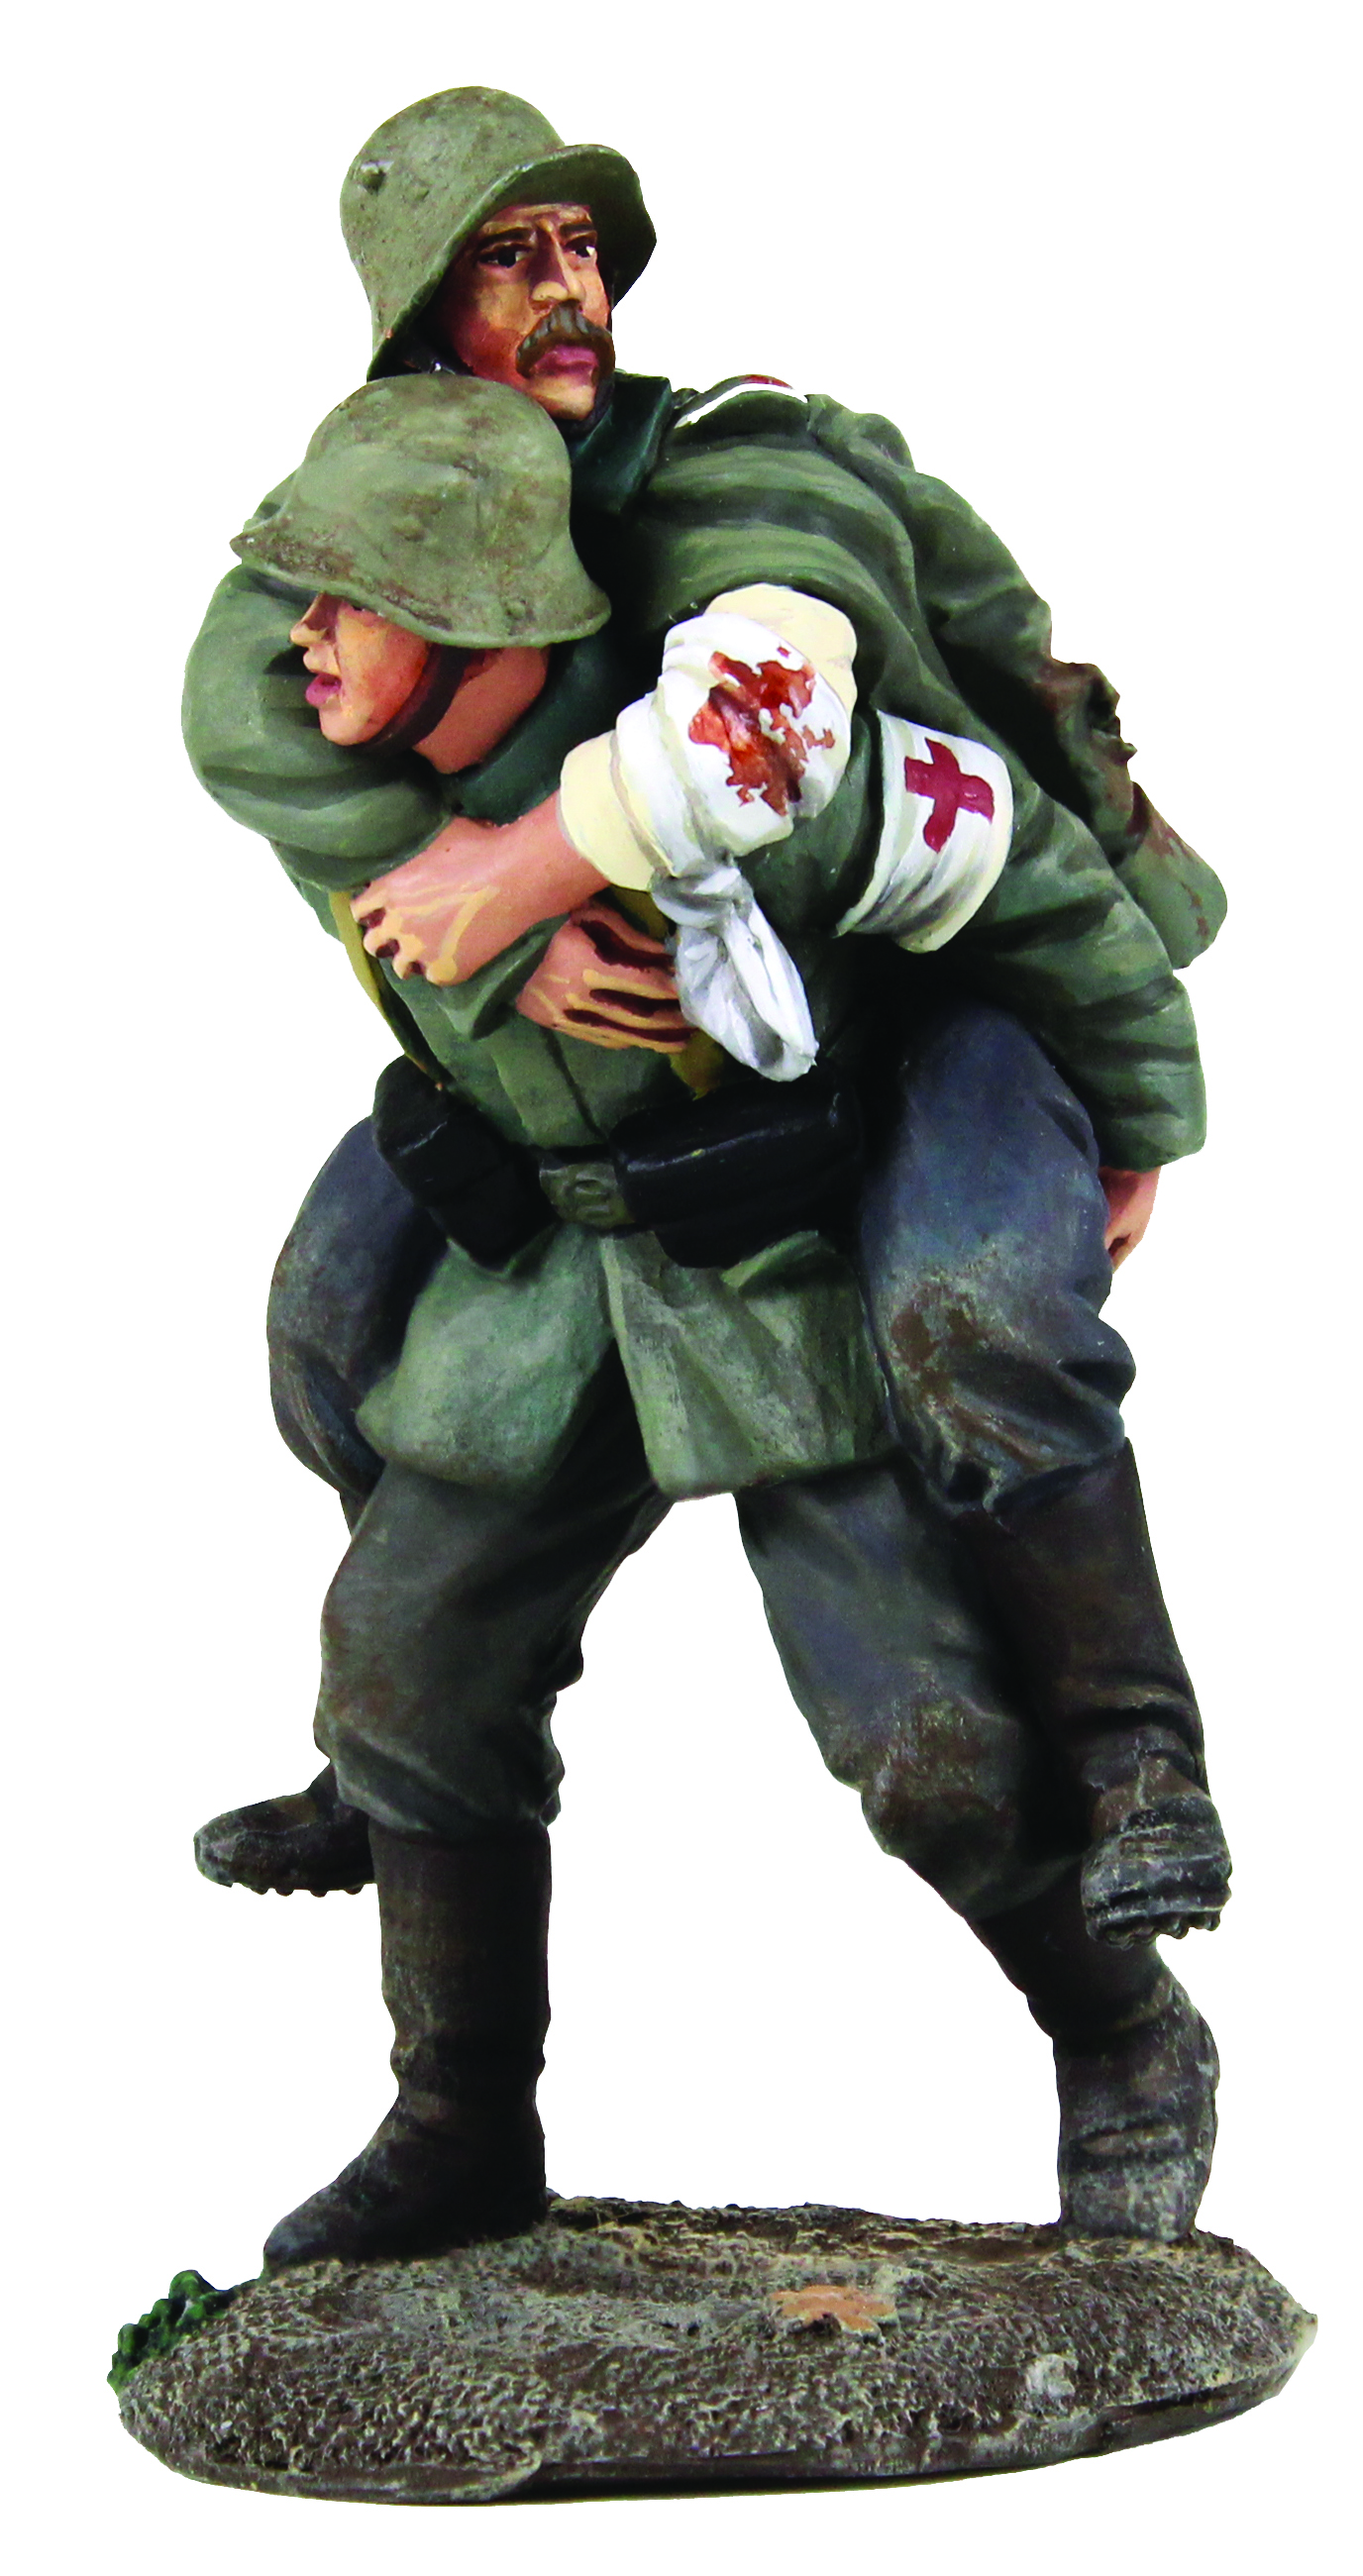 1916-18 German Medic Carrying Wounded Soldier - 2 Piece Set